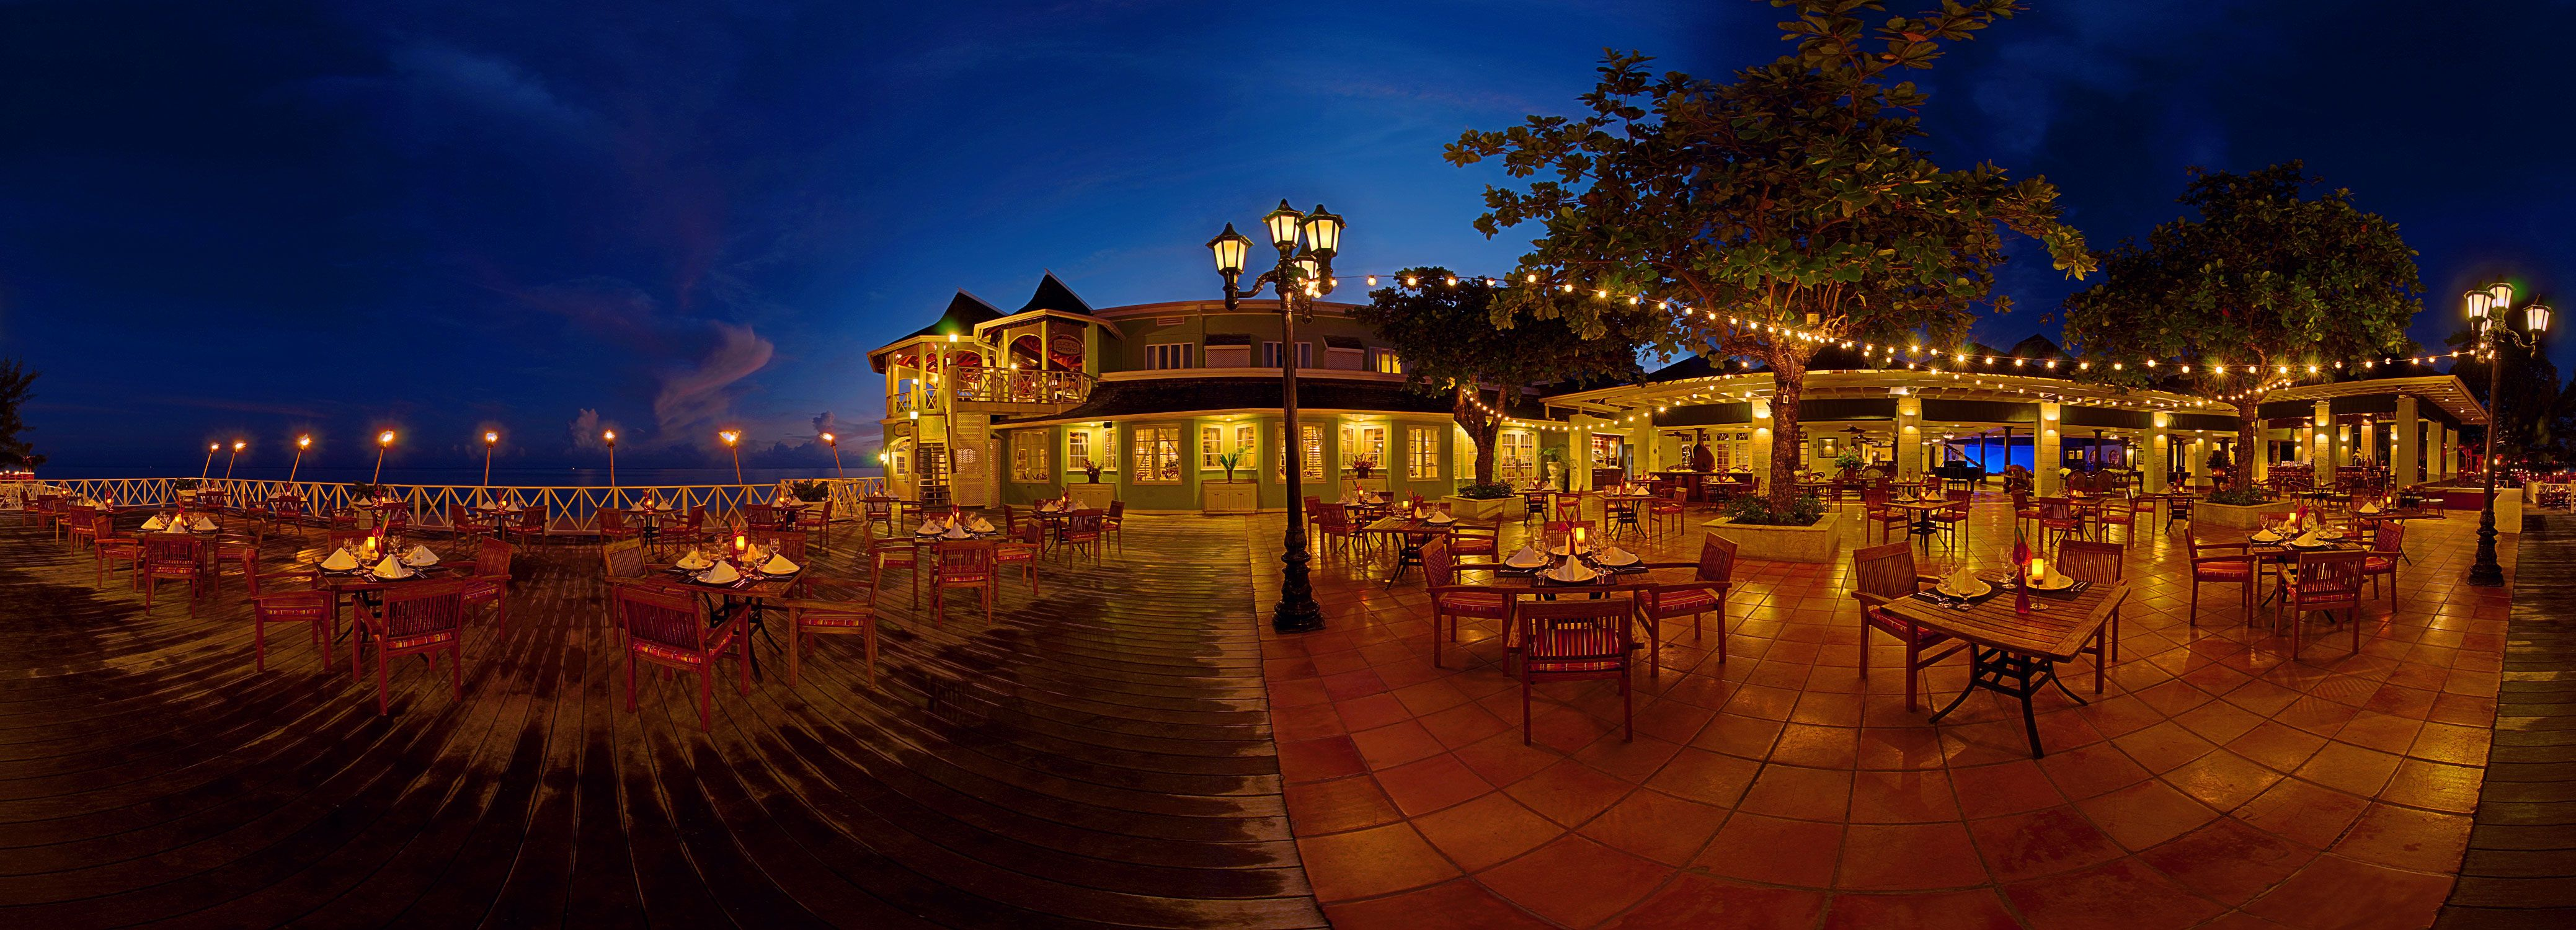 Bayside Restaurant at Sandals Montego Bay (With images